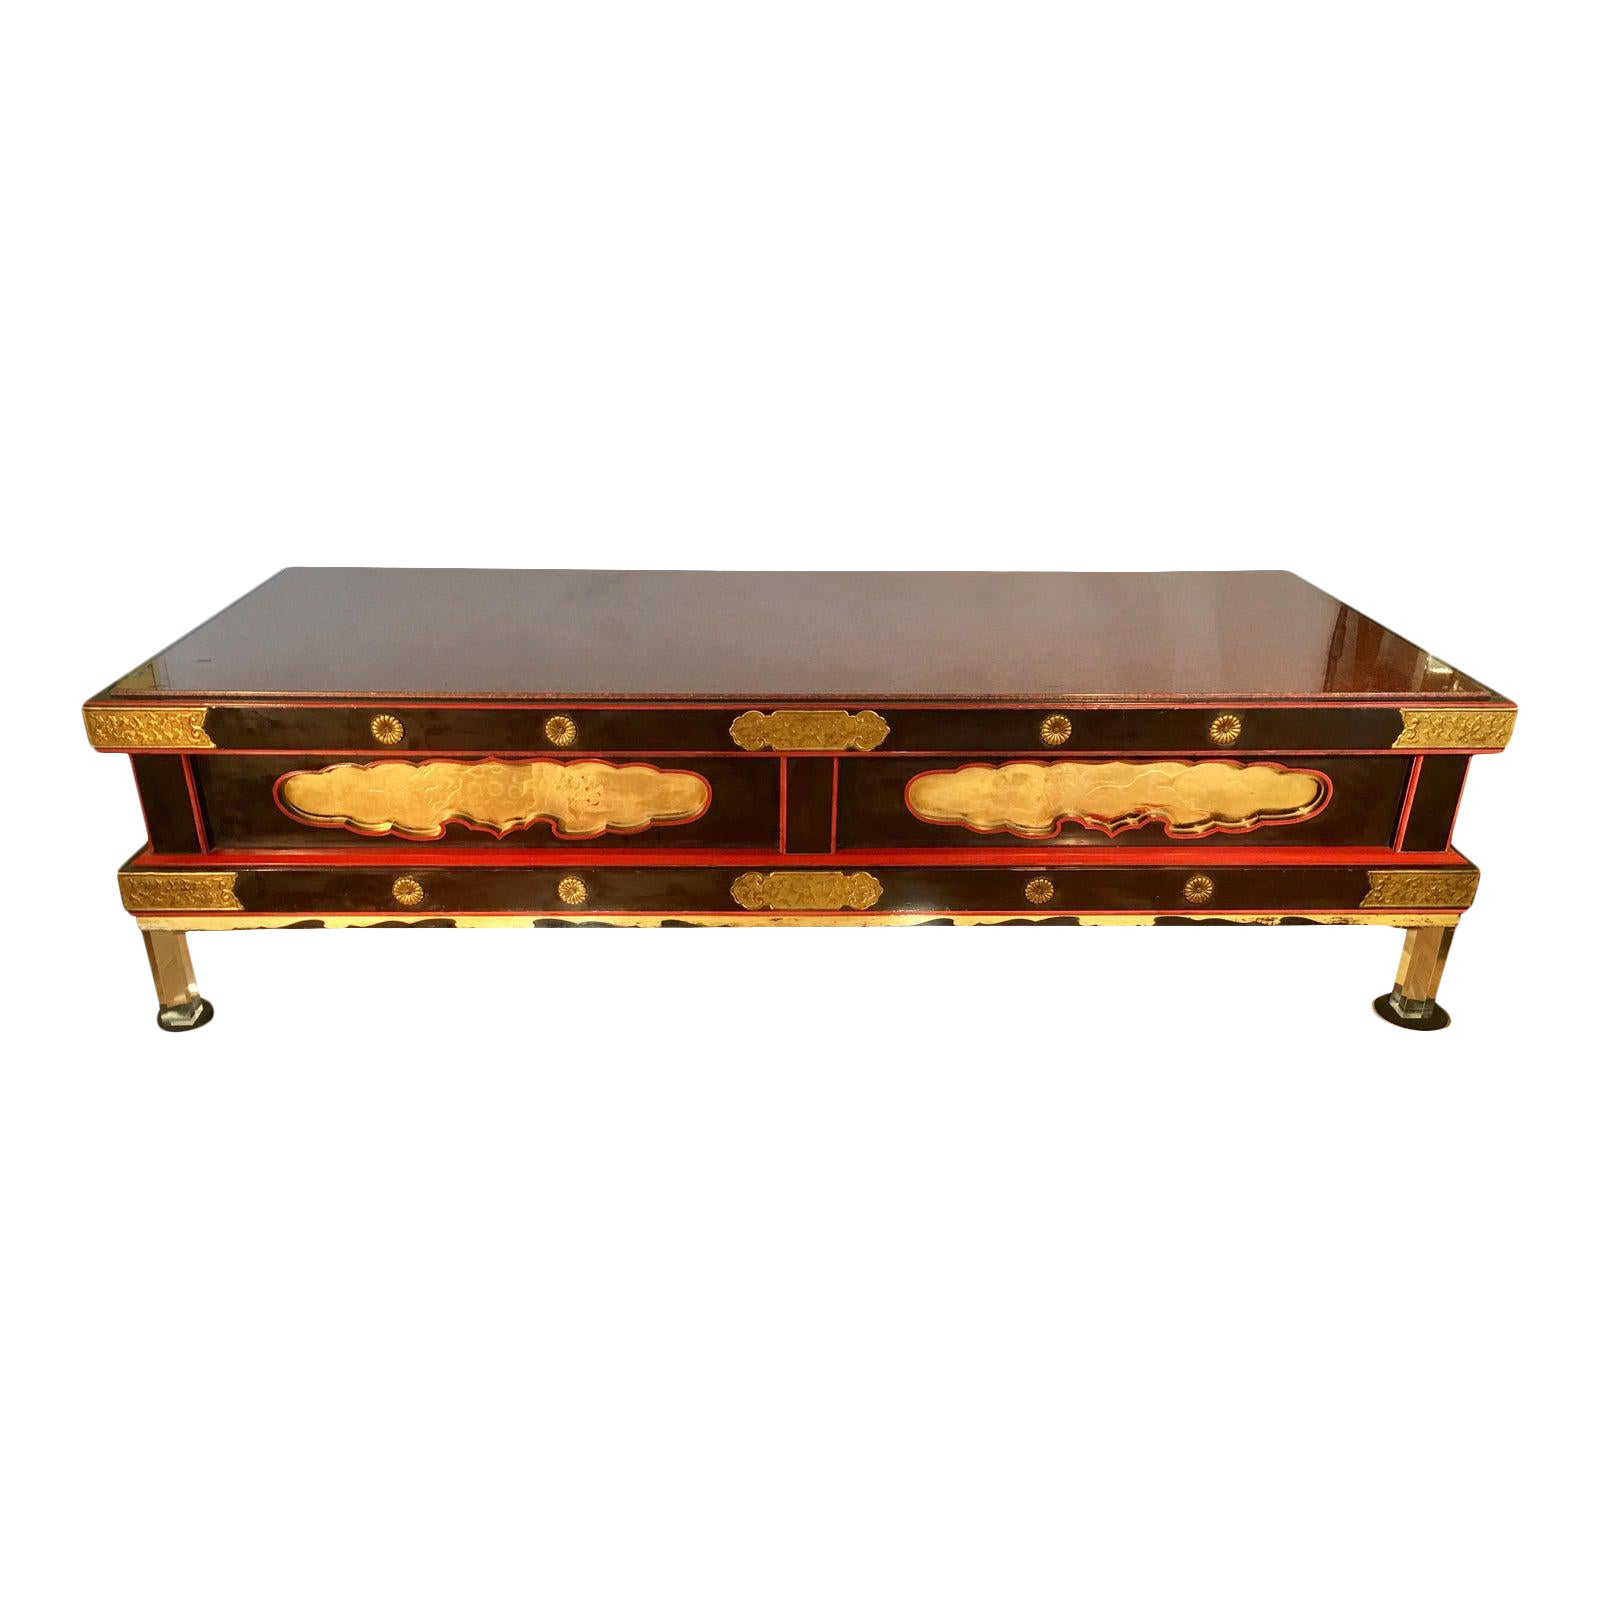 Rare Antique Japanese Coffee Table W Rouge Marble Top & Lucite Legs